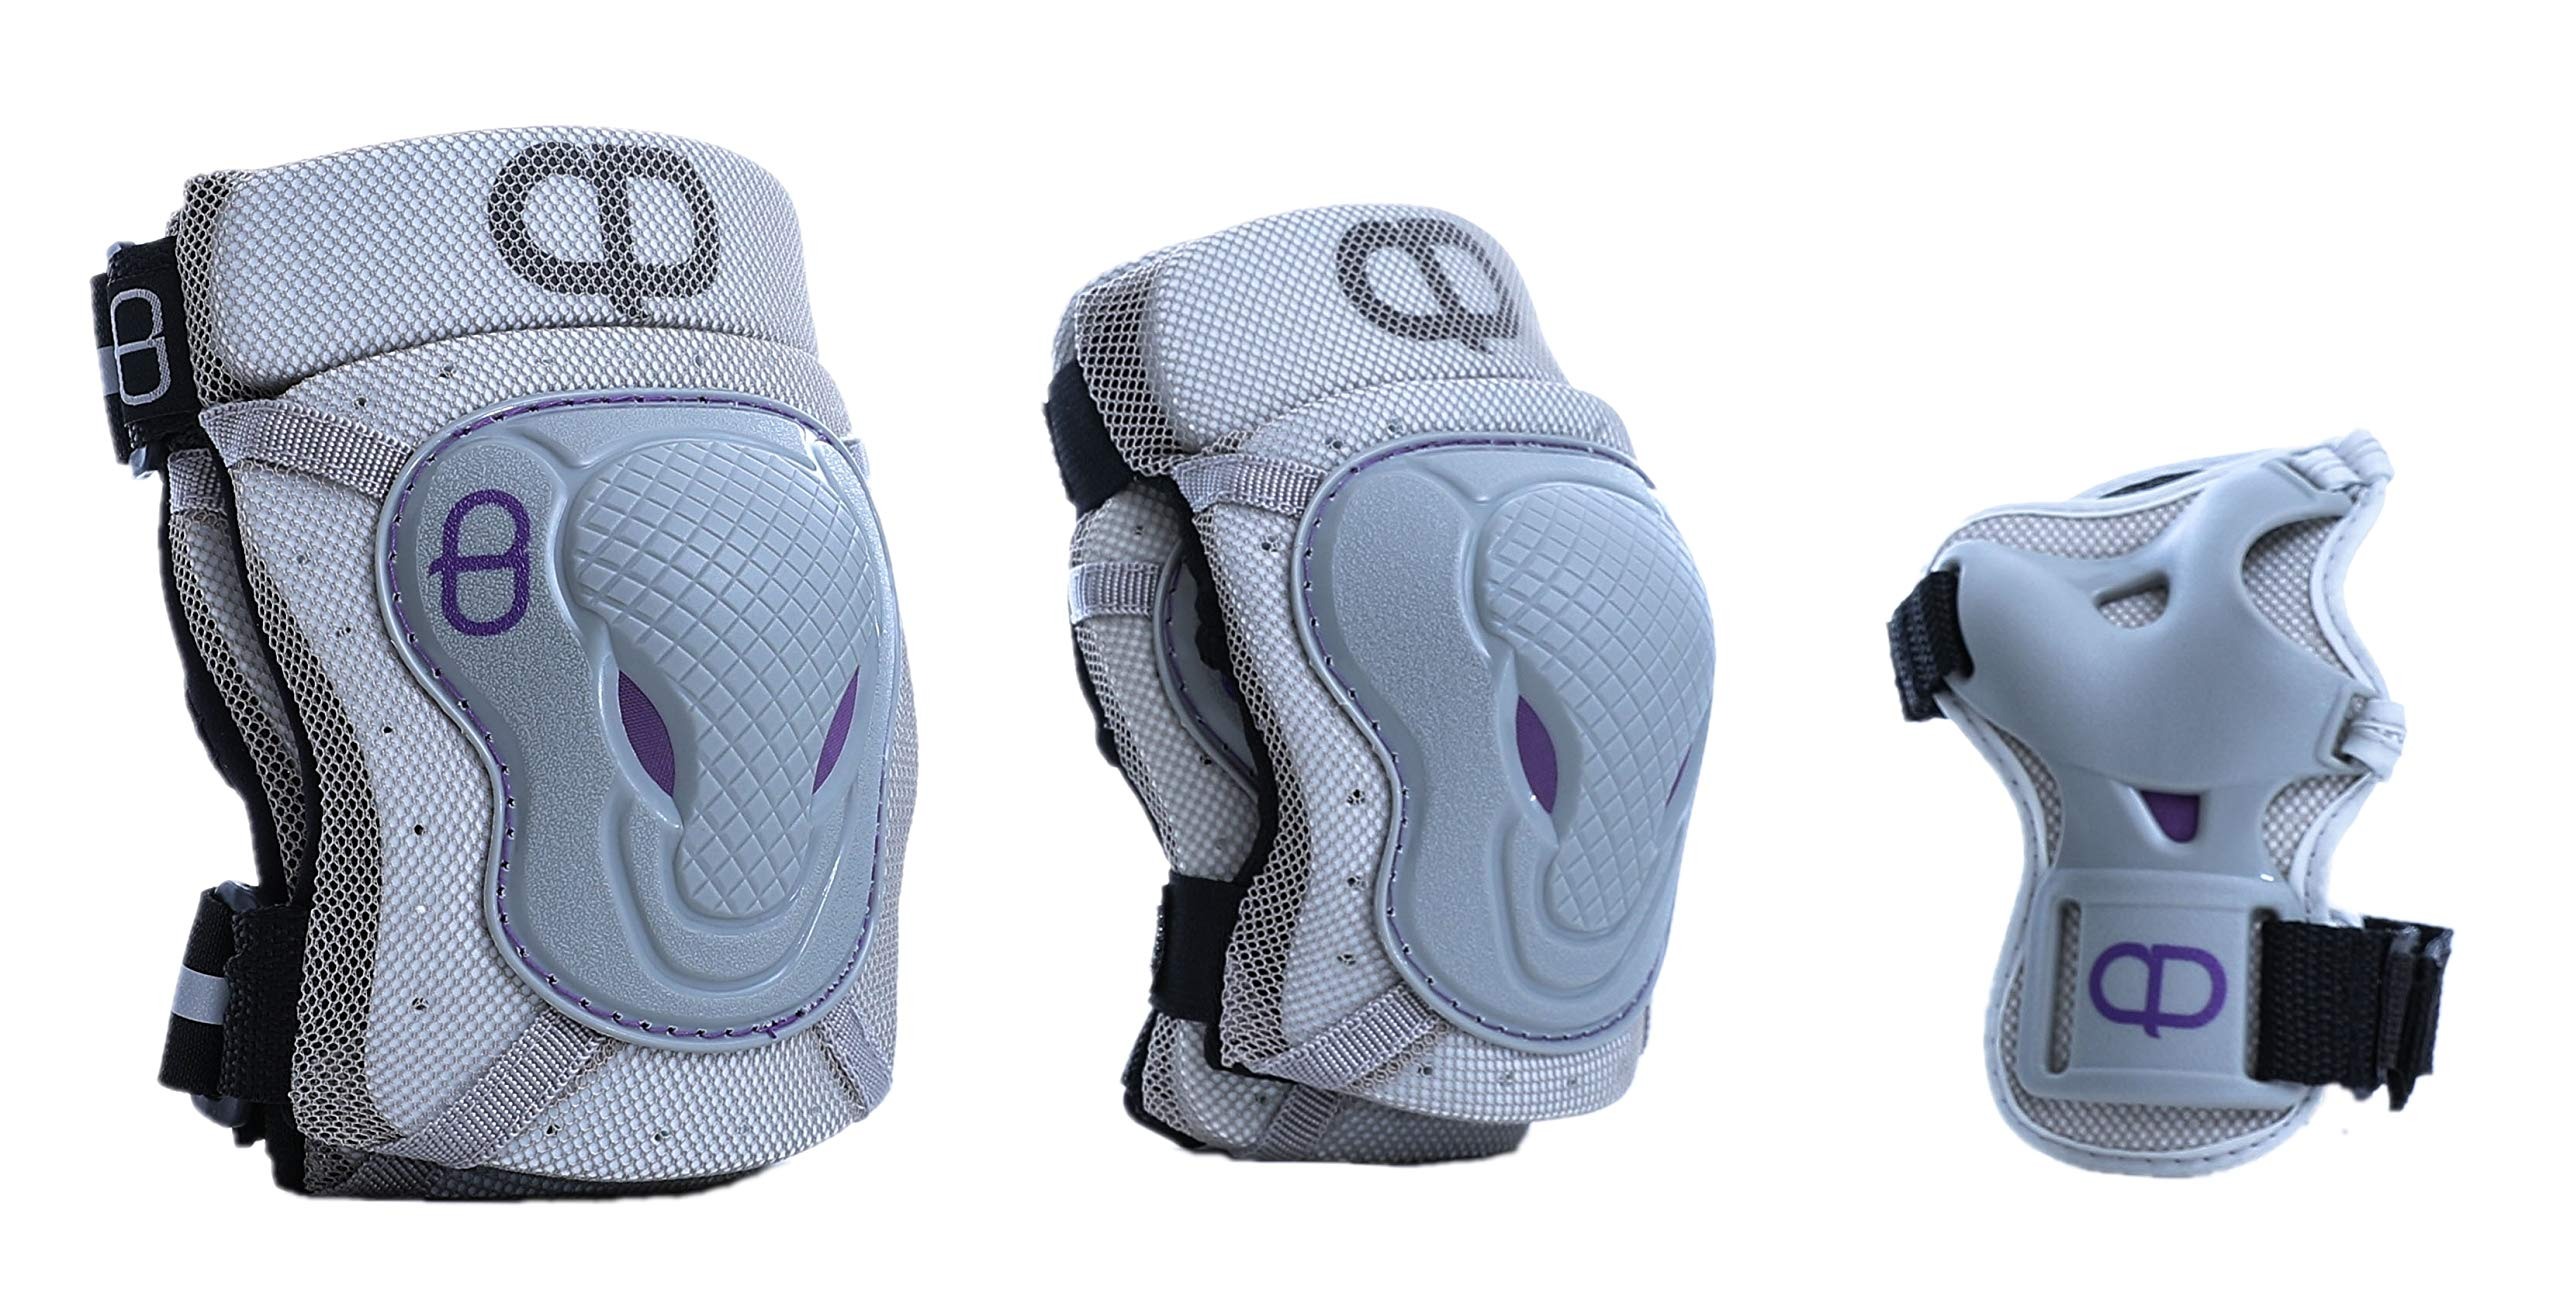 DA Deluxe Armour Teen/Adult Knee & Elbow pad with Wrist Guard (Gray, Medium)